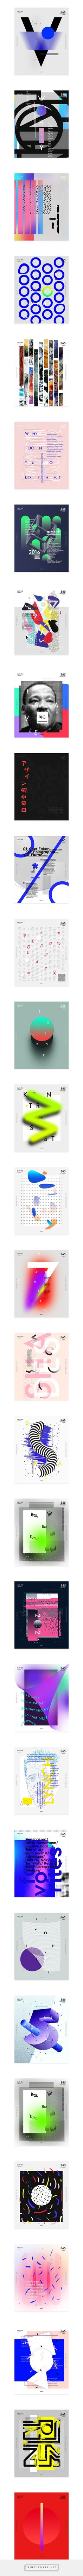 Baugasm - One poster every day for 365 on Behance... - a grouped images picture - Pin Them All